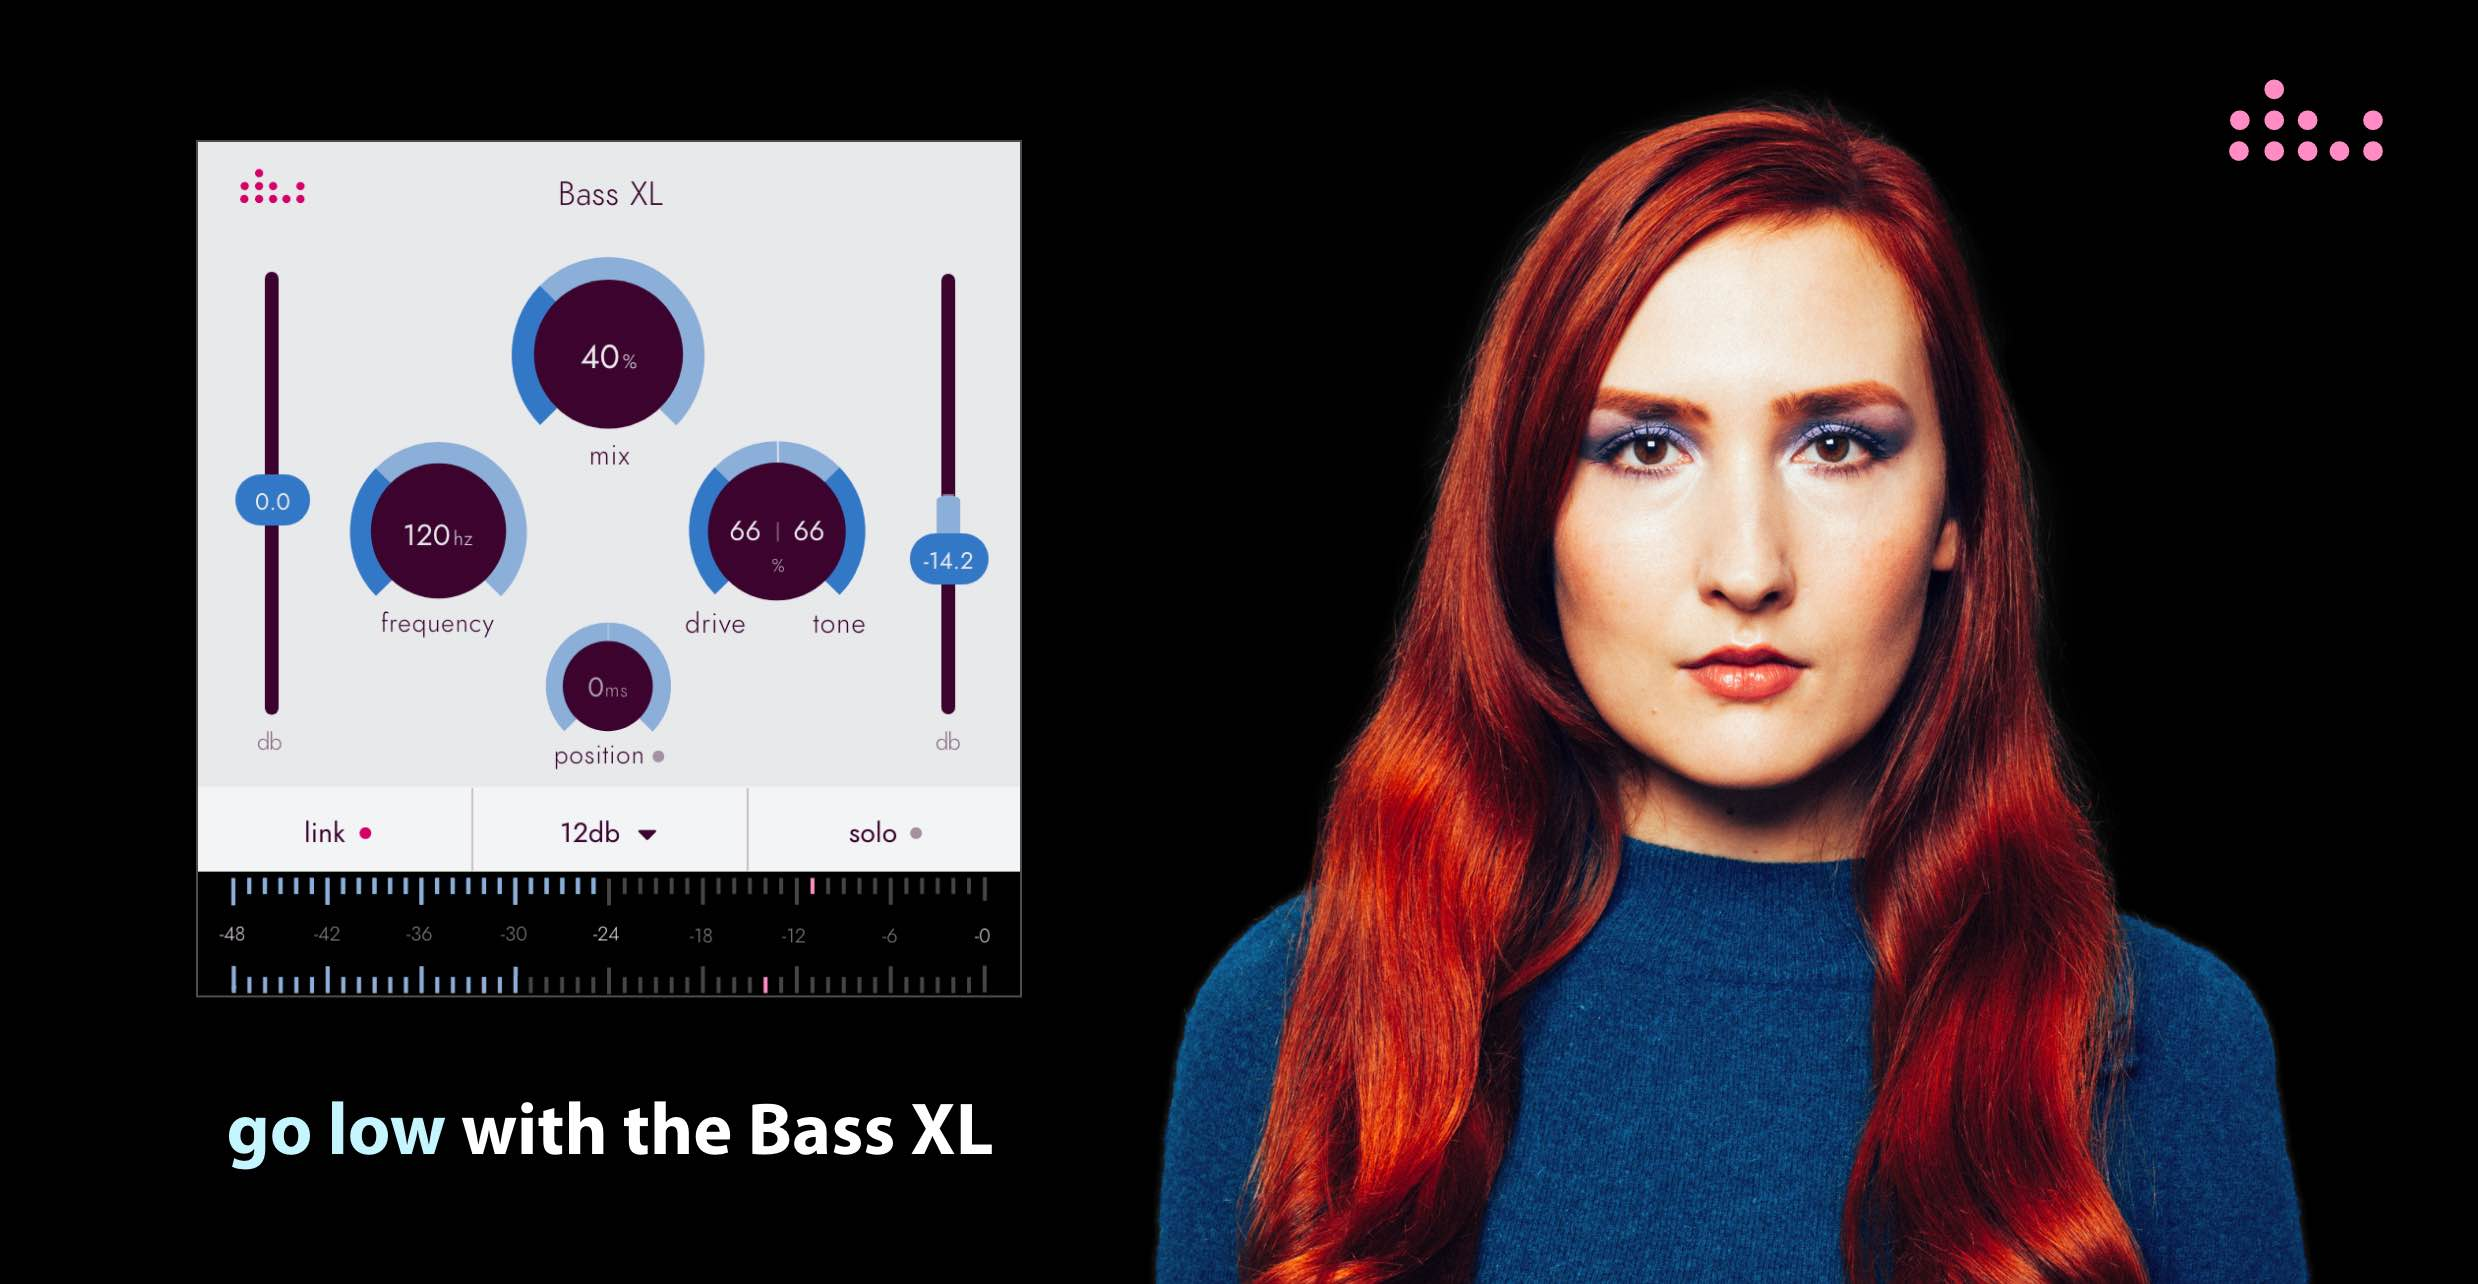 go low with the Bass XL